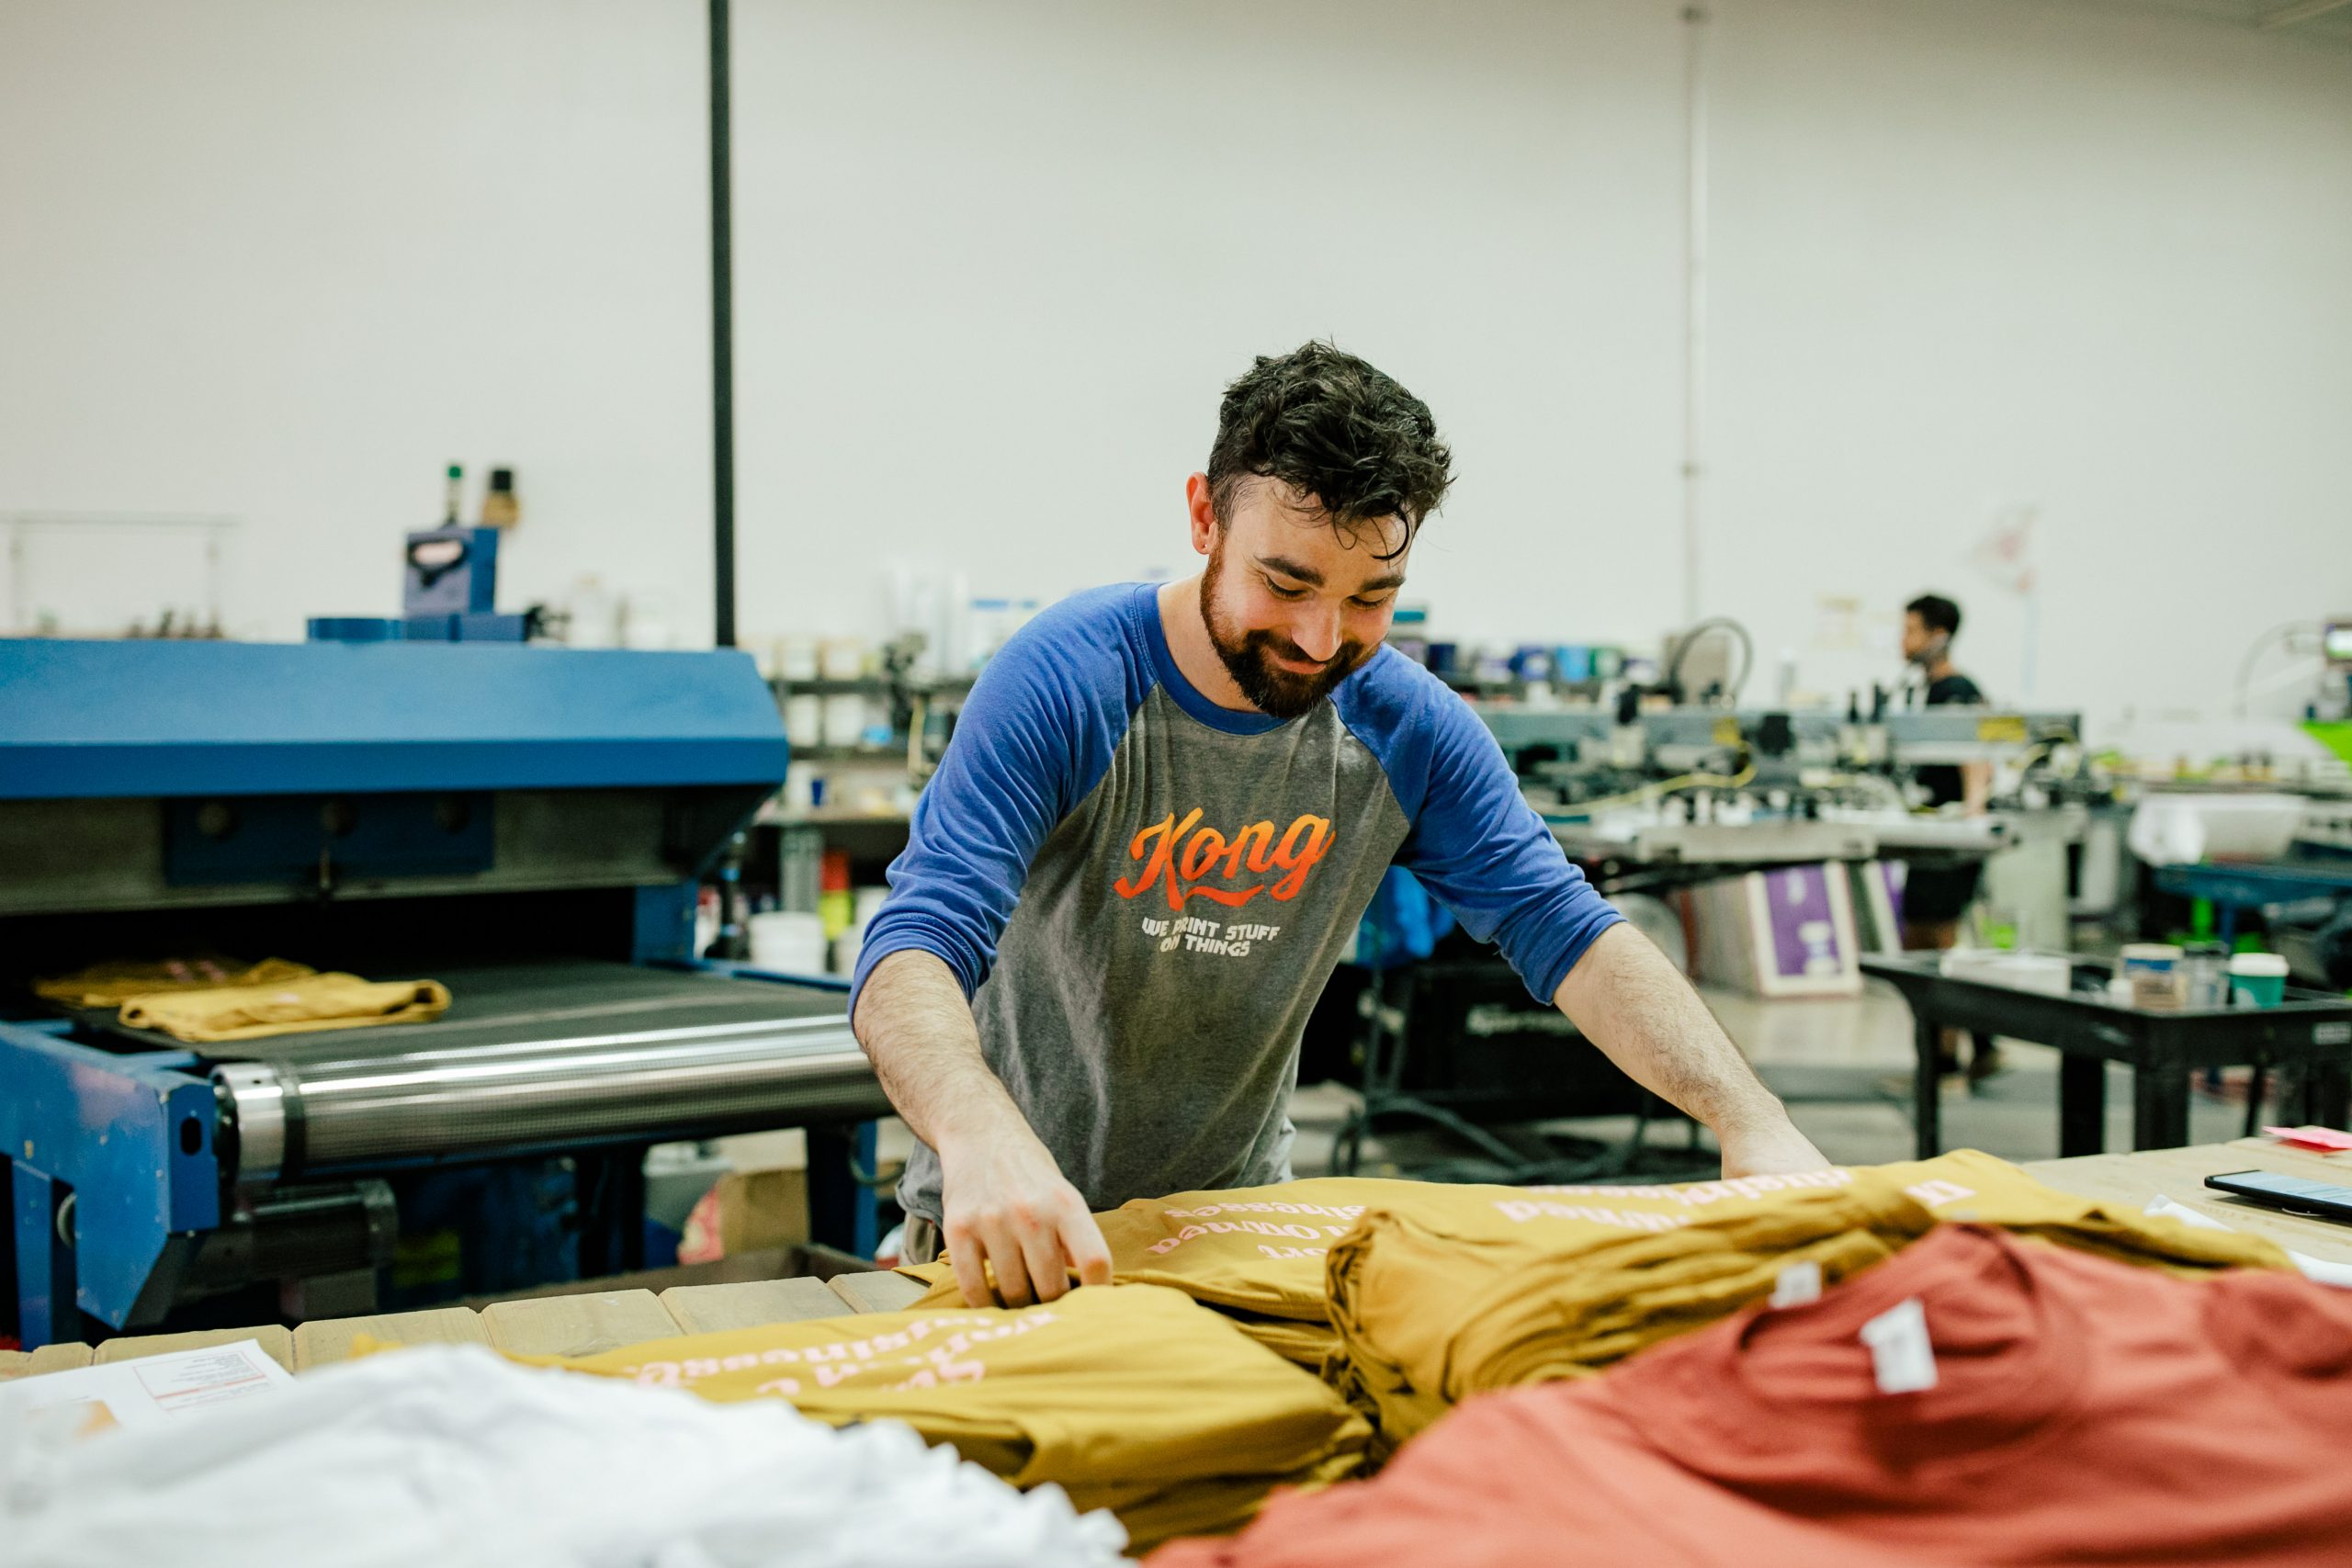 Ricky Smiling While Doing Quality Assurance